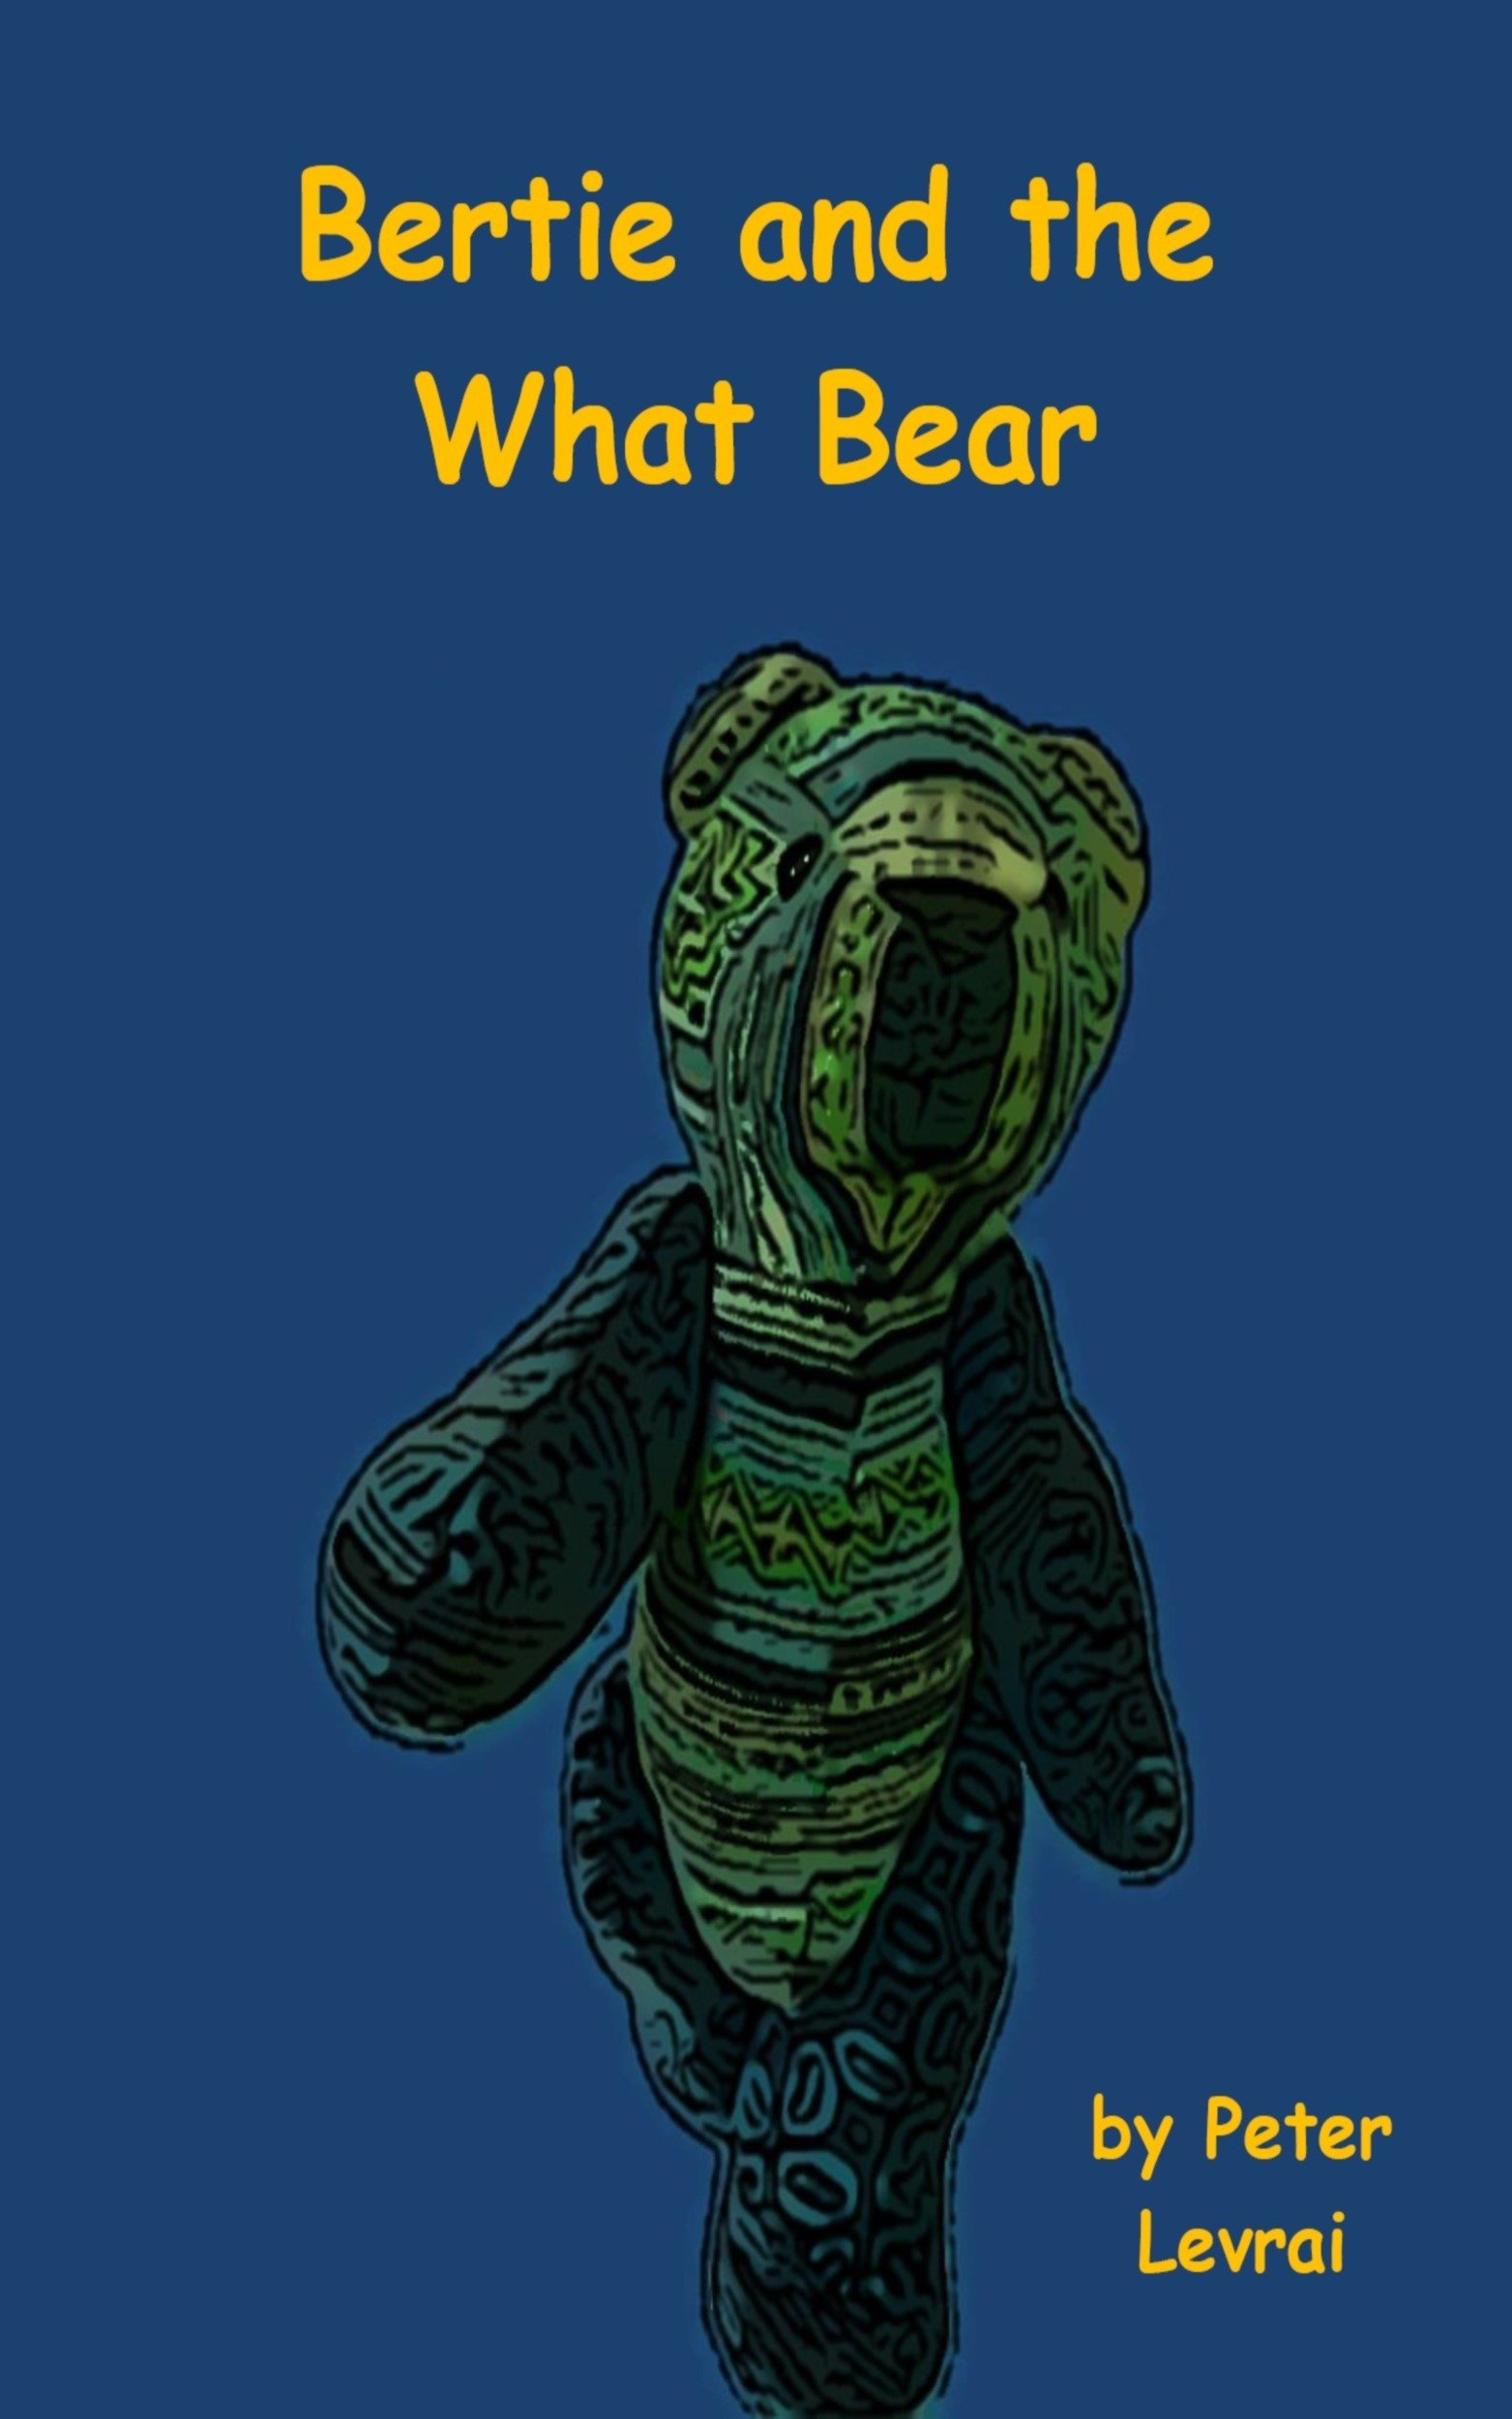 Cover of Bertie and the What Bear by Peter Levrai